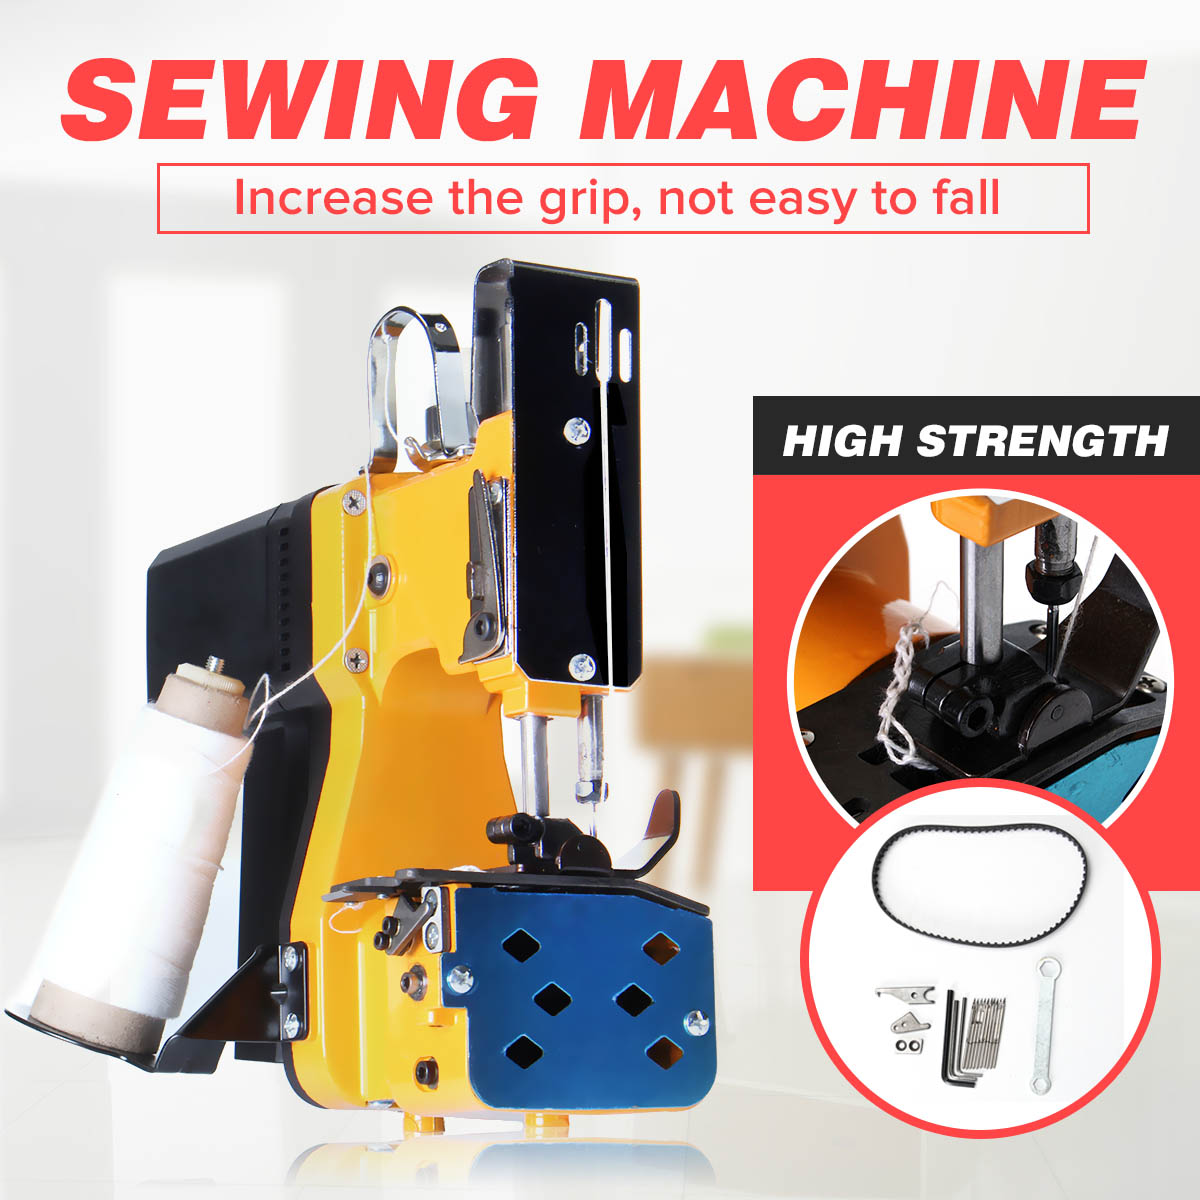 220V Mini Electric Sewing Machine Kit Portable Bag Closer Stitching Sealing Machines for Industrial Home Textile with Plug220V Mini Electric Sewing Machine Kit Portable Bag Closer Stitching Sealing Machines for Industrial Home Textile with Plug